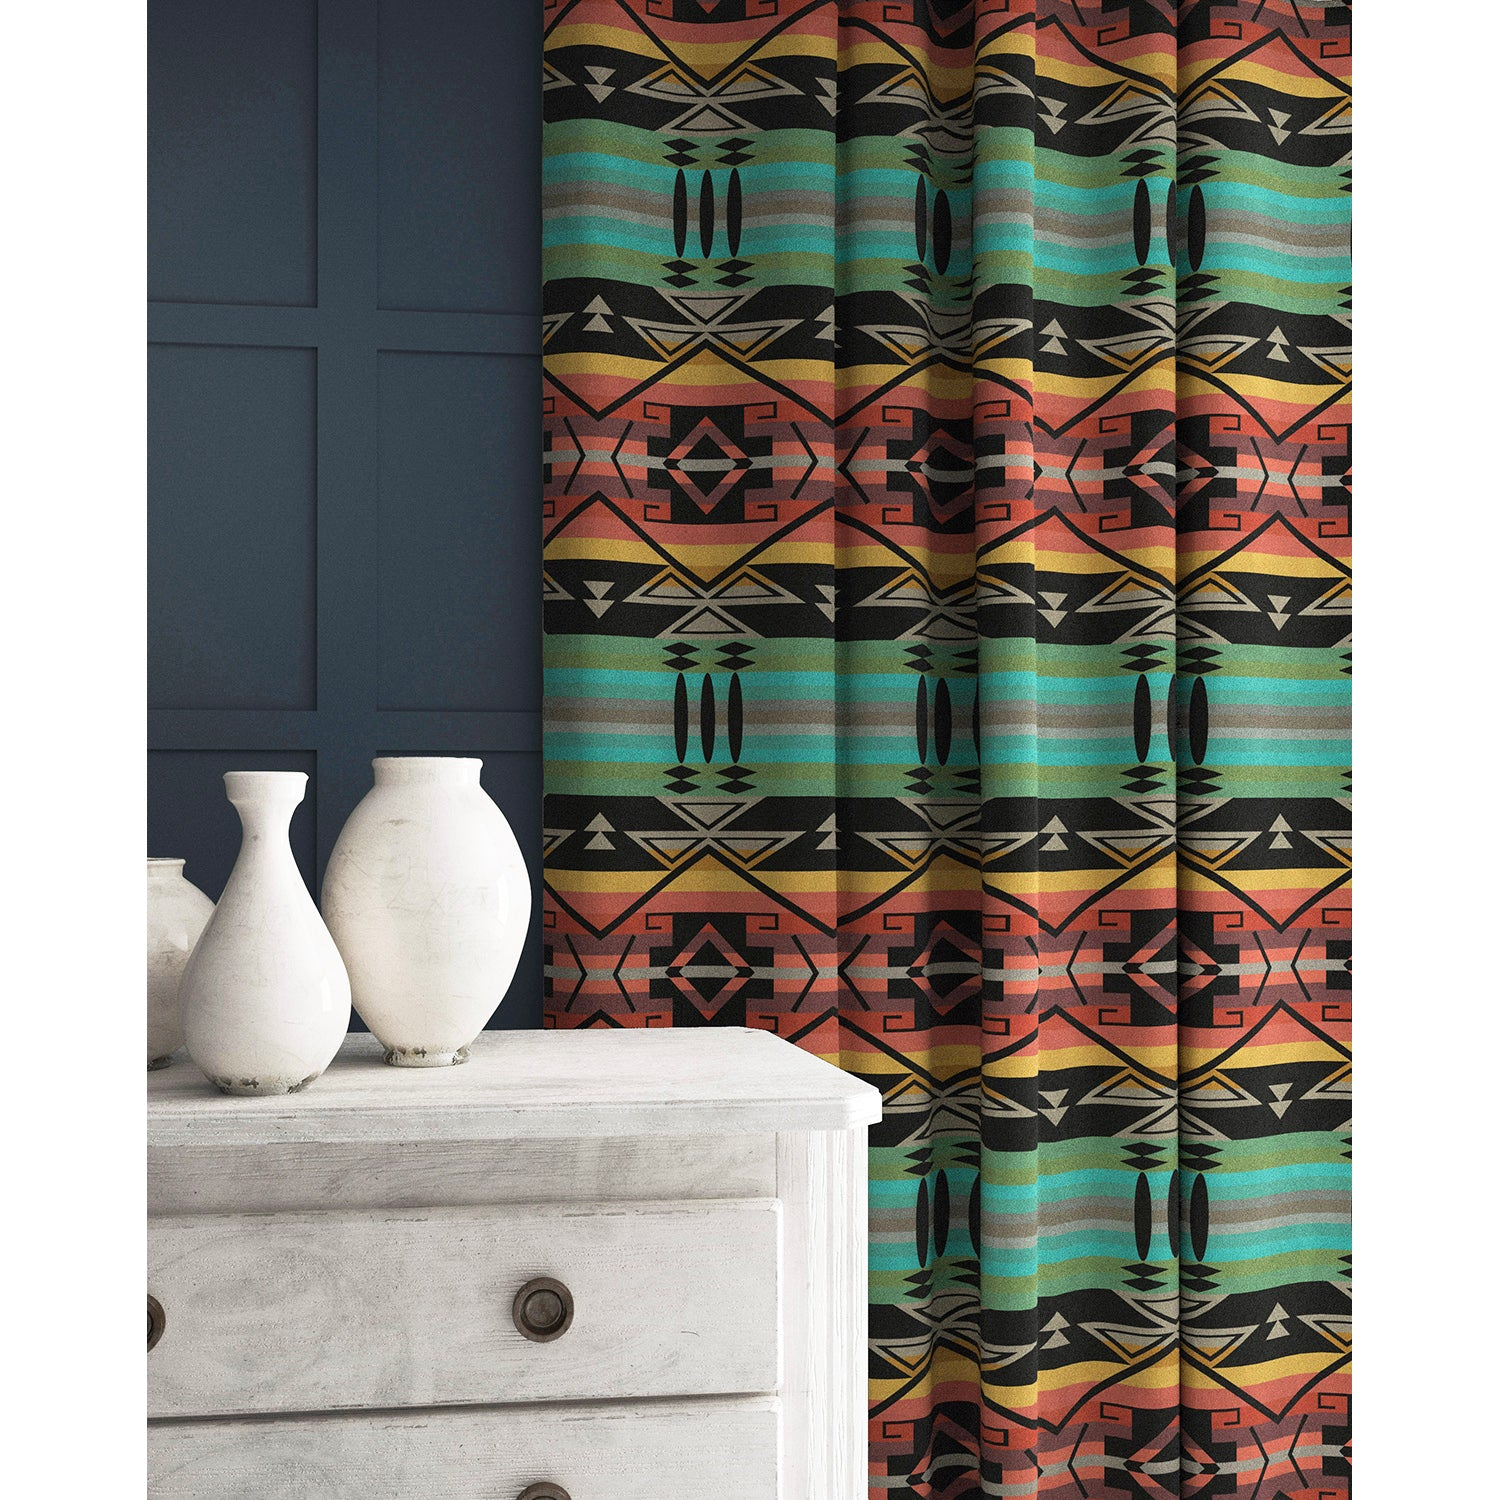 Curtain in a bright coloured wool fabric with South American inspired design